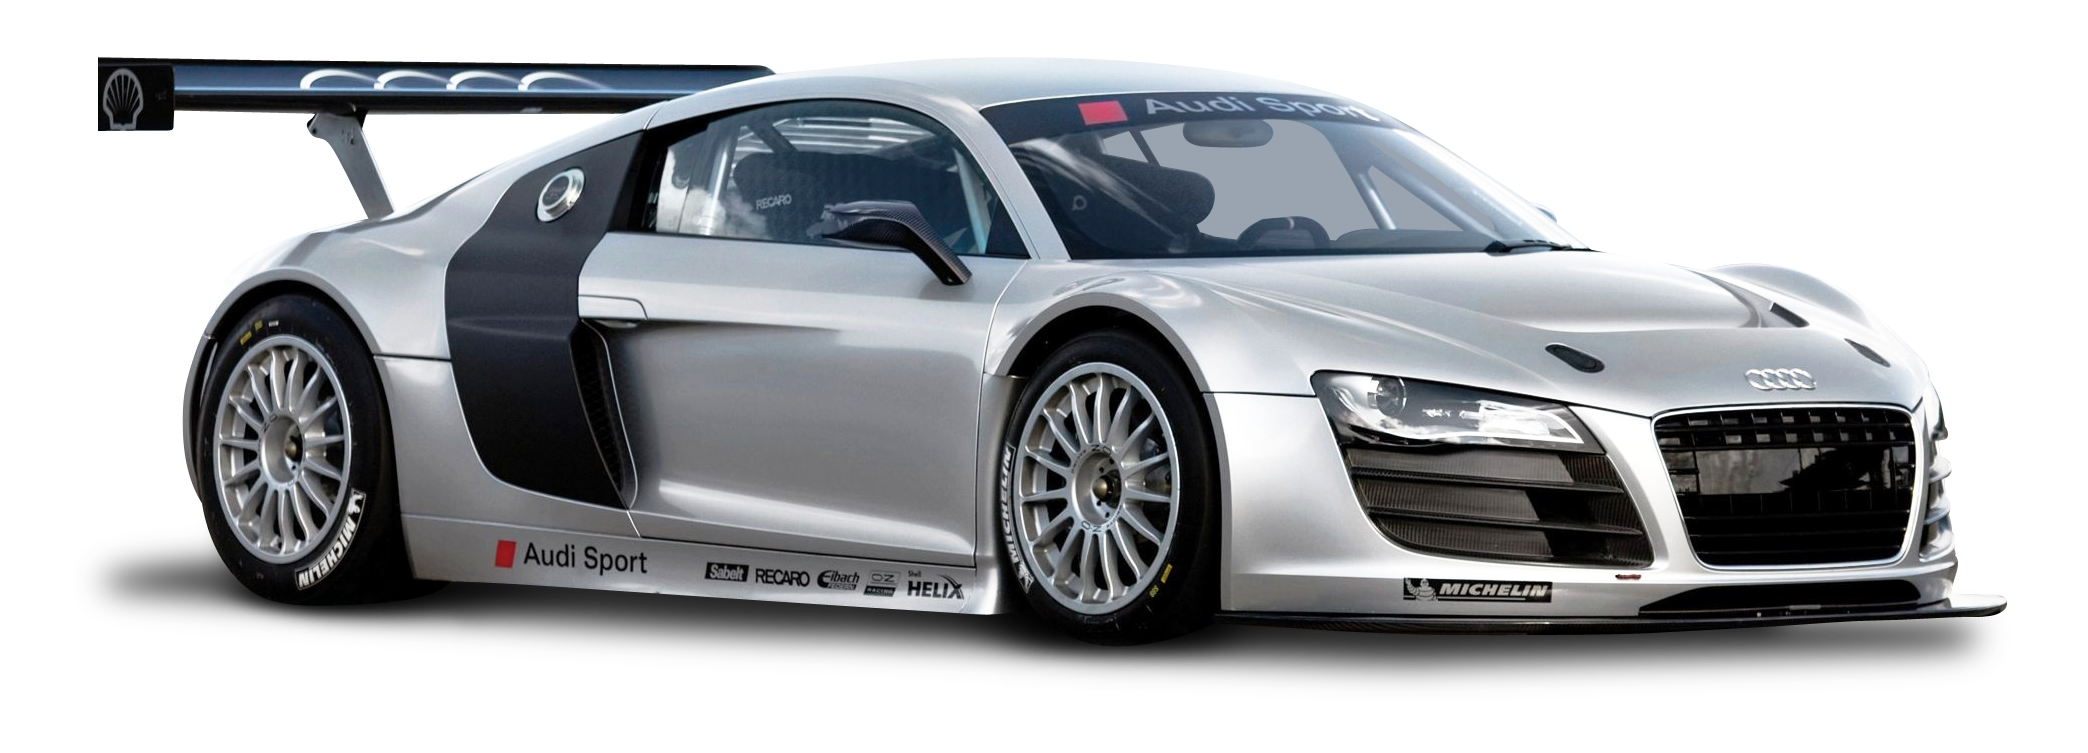 Audi Sports Car PNG Image   PurePNG | Free Transparent CC0 PNG Image Library